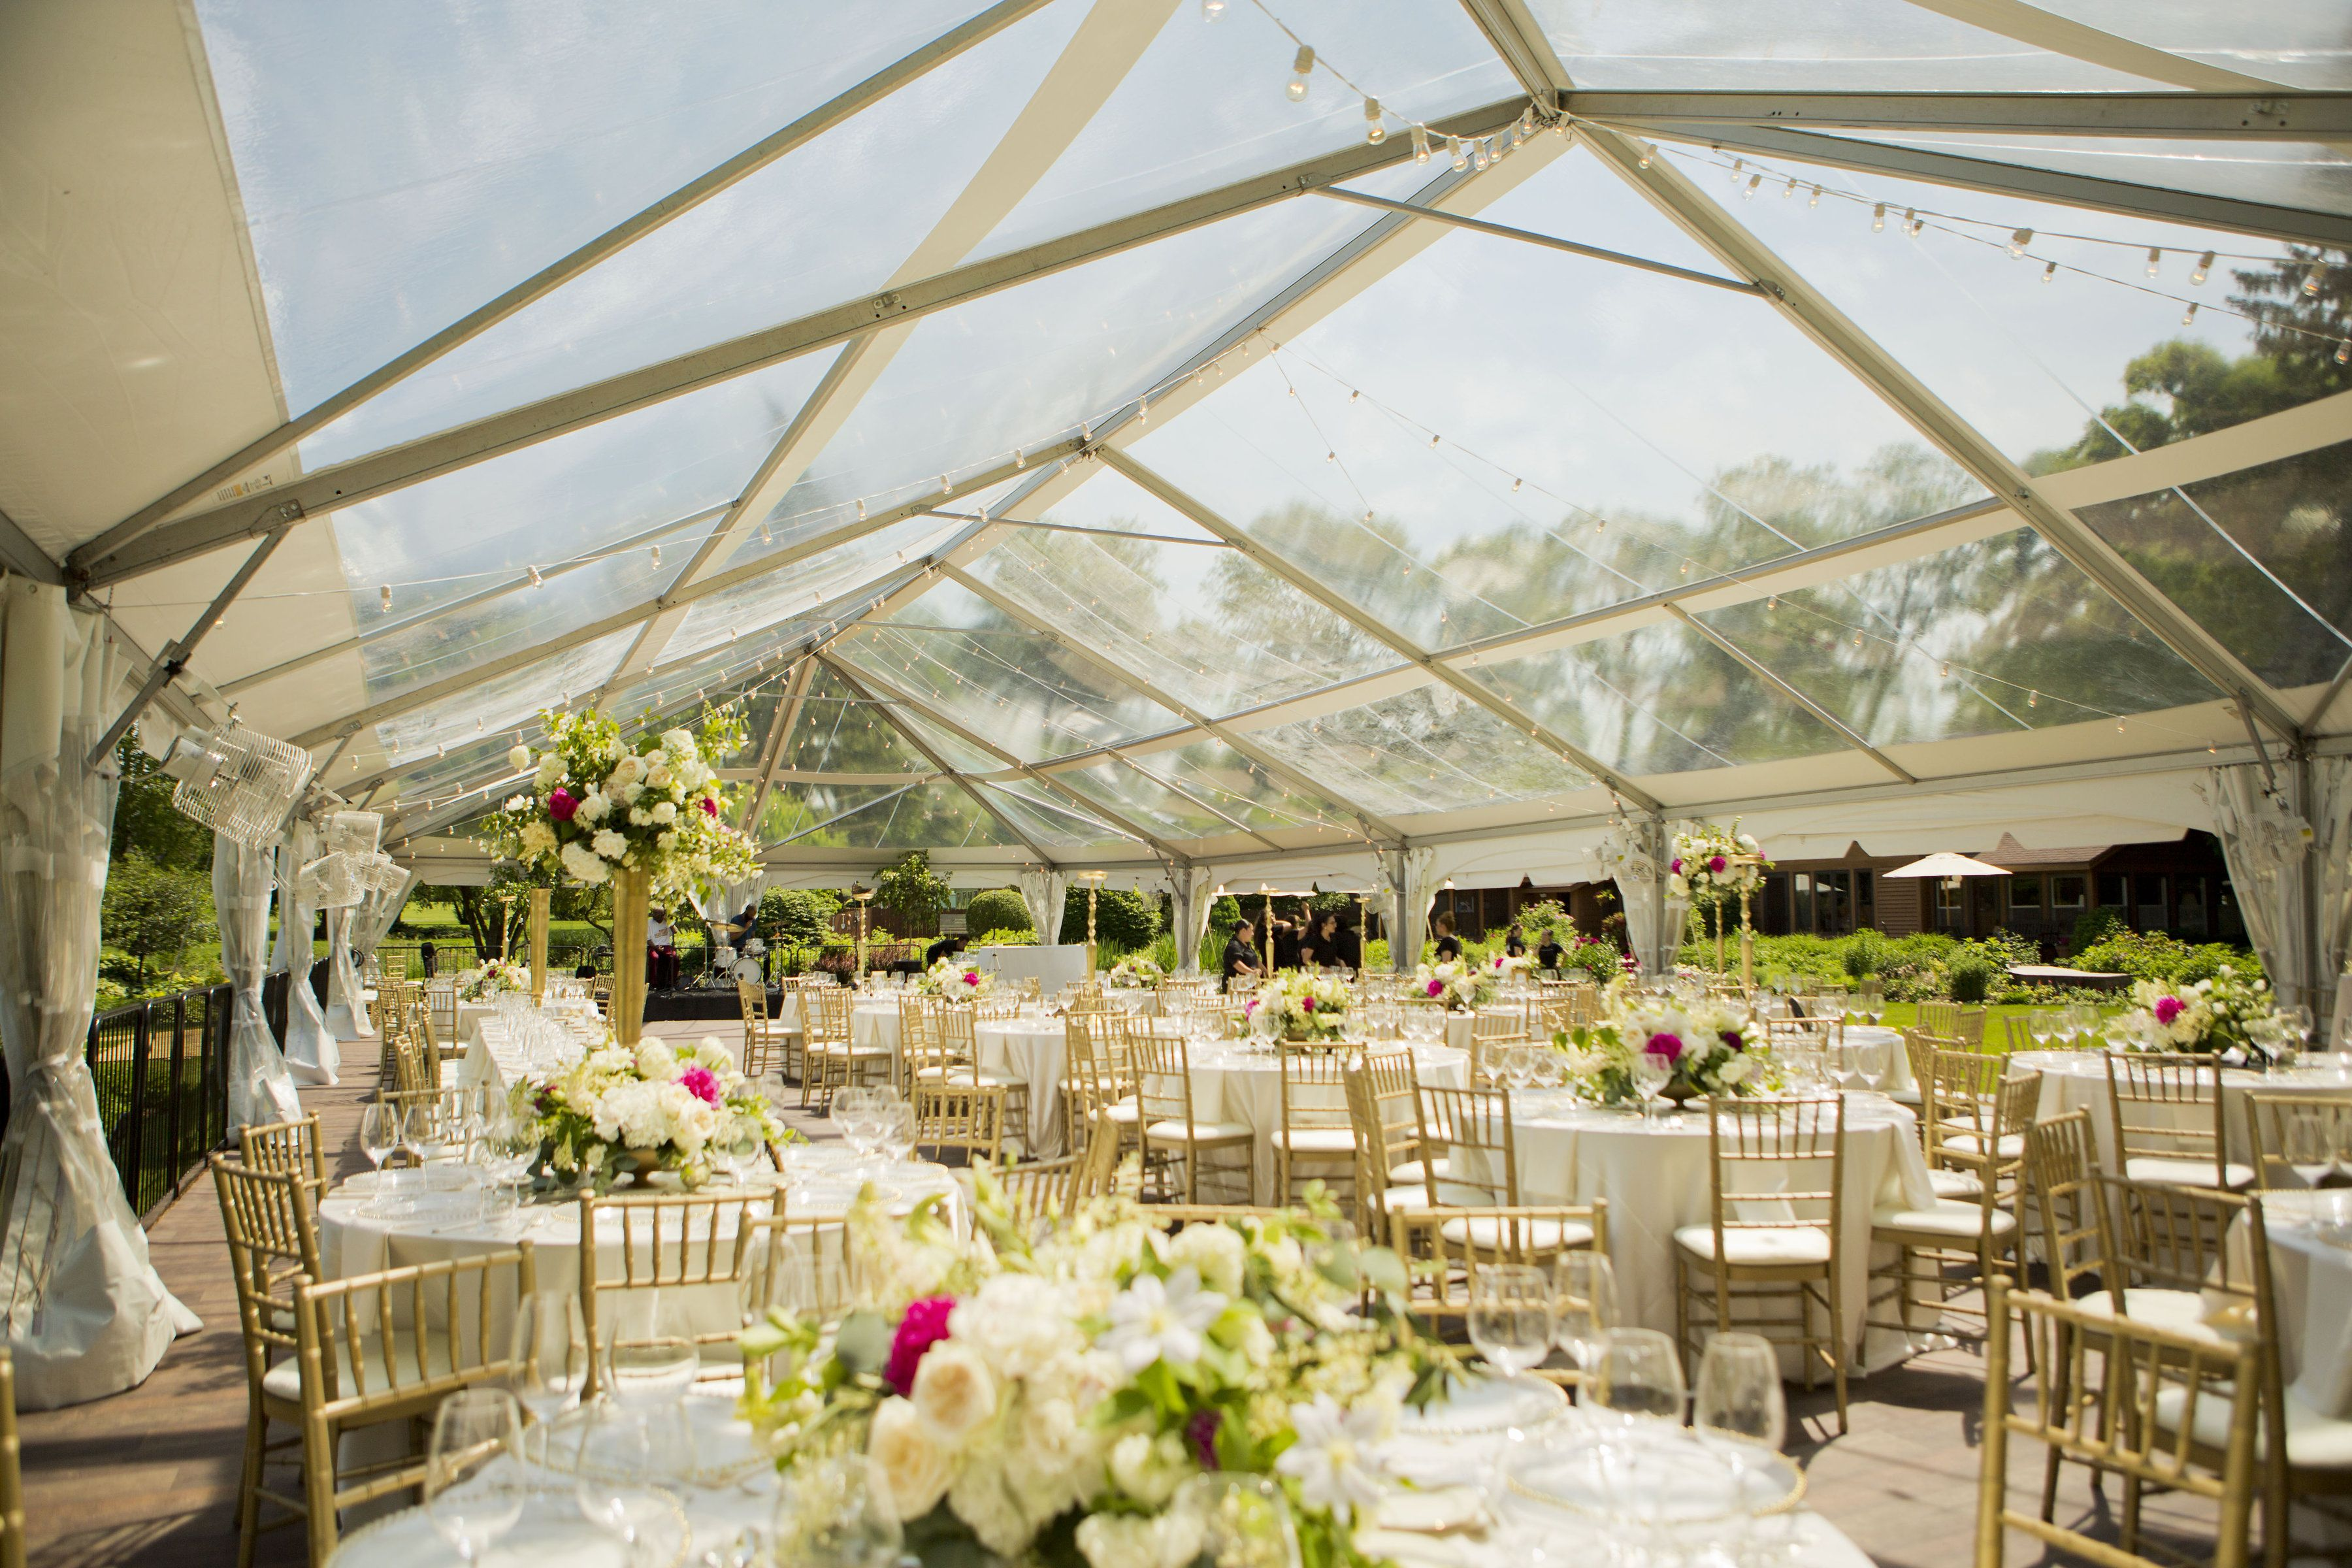 Montreal Party Rentals Wedding Tents Chairs Party Rentals Local Party Rental Company Serving The Montreal Area We Have A P Tent Rentals Tent Backyard Tent